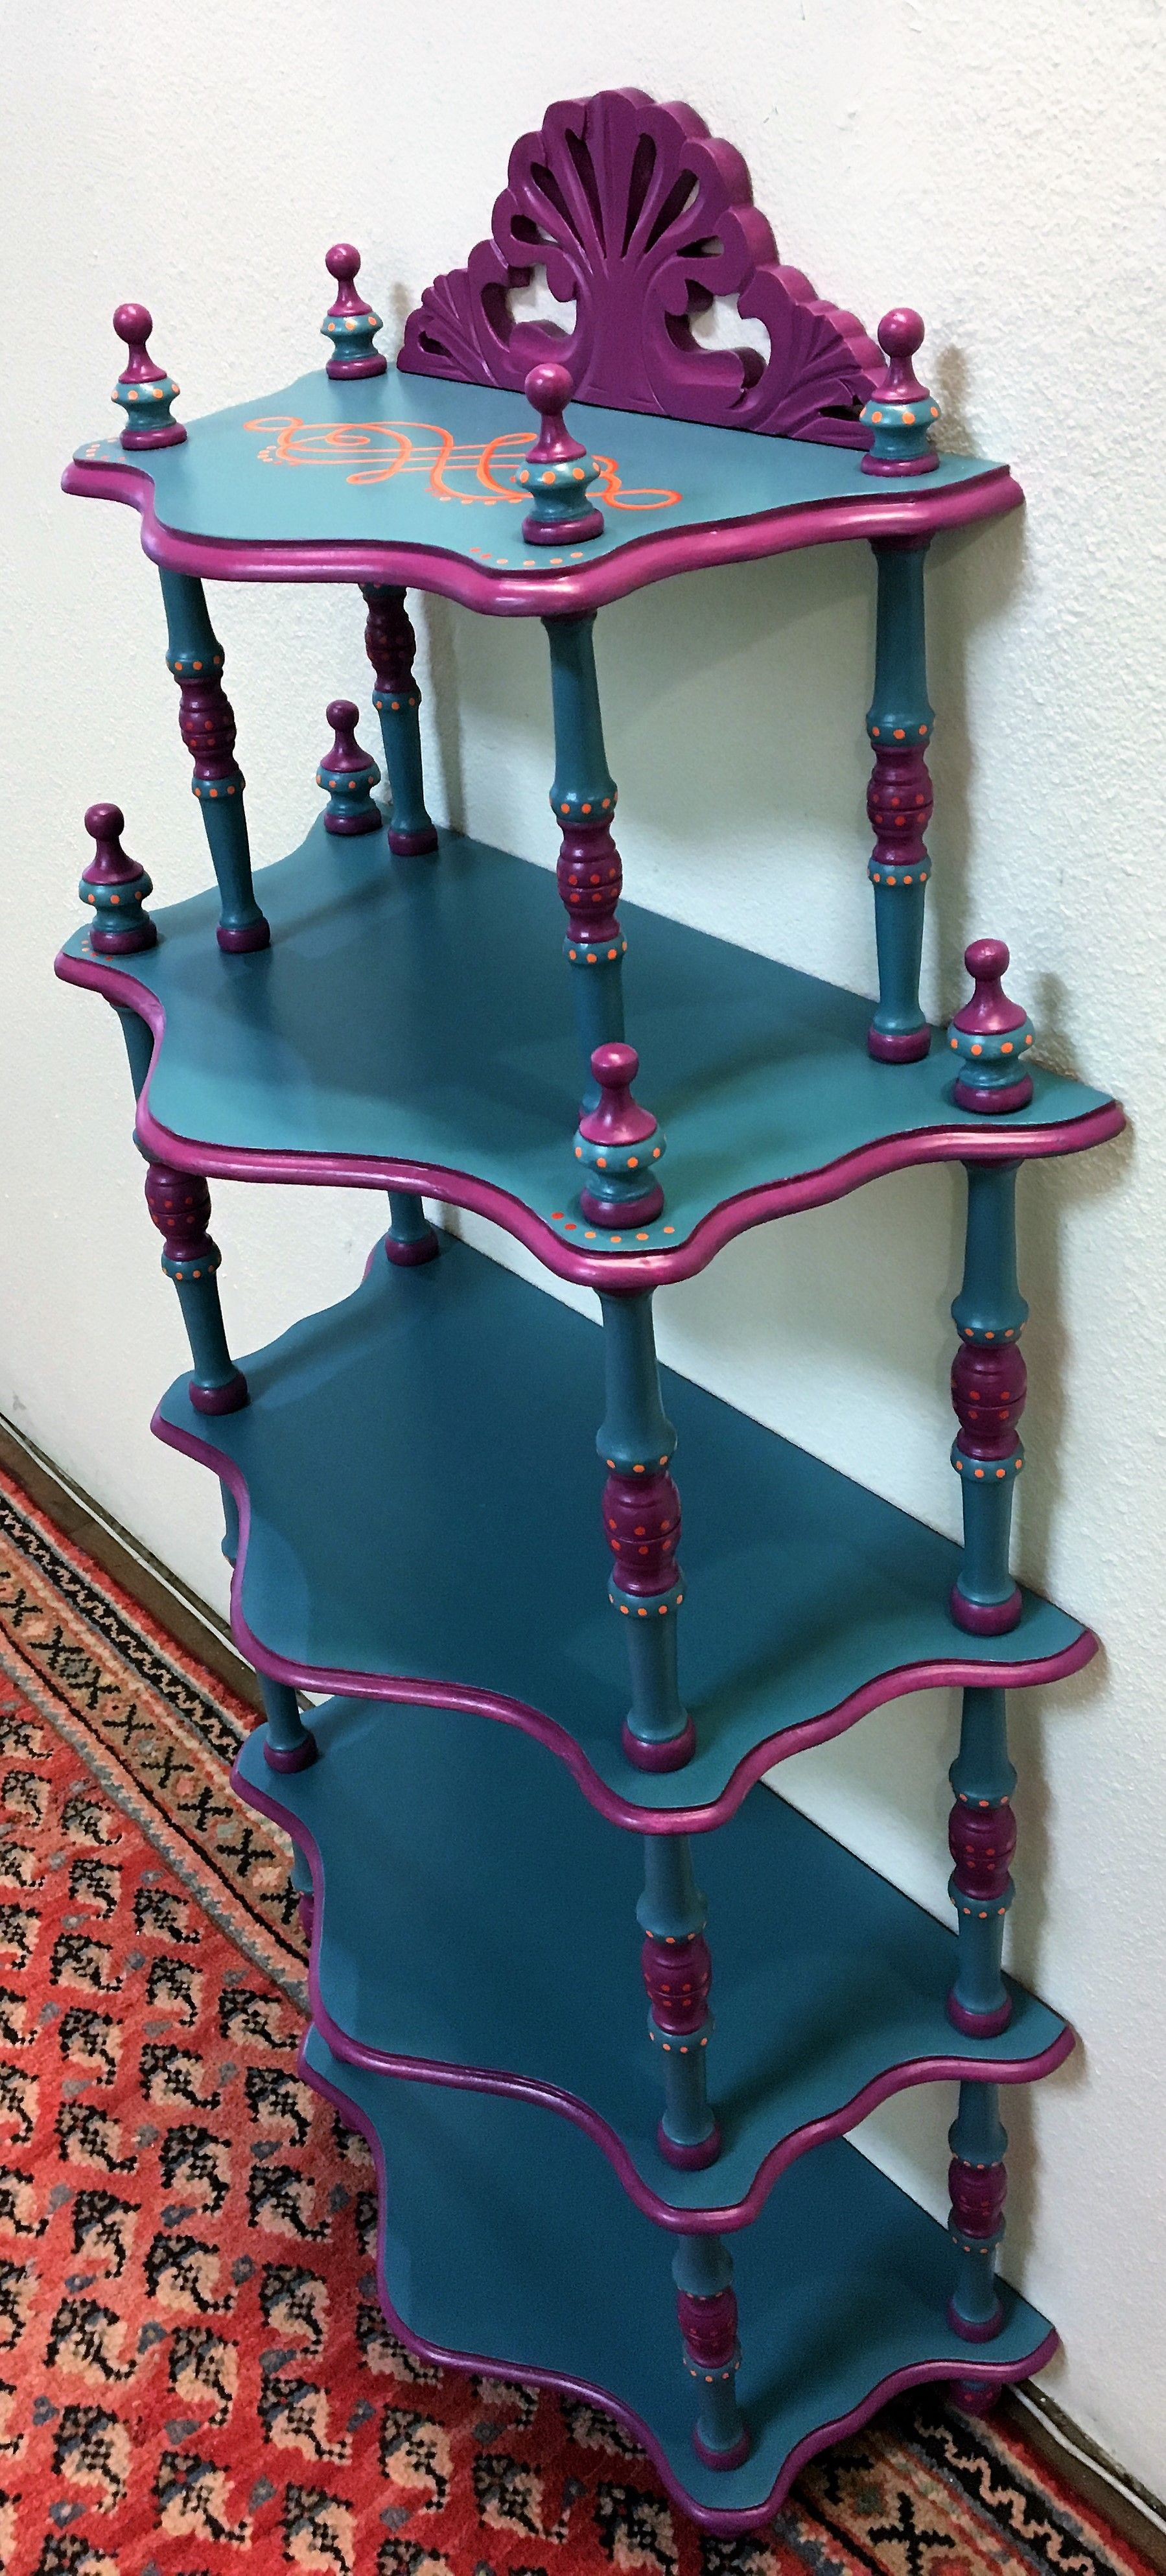 Cheryl Scott Artist  Painted Furniture, Whimsical, Funky, Upcycled